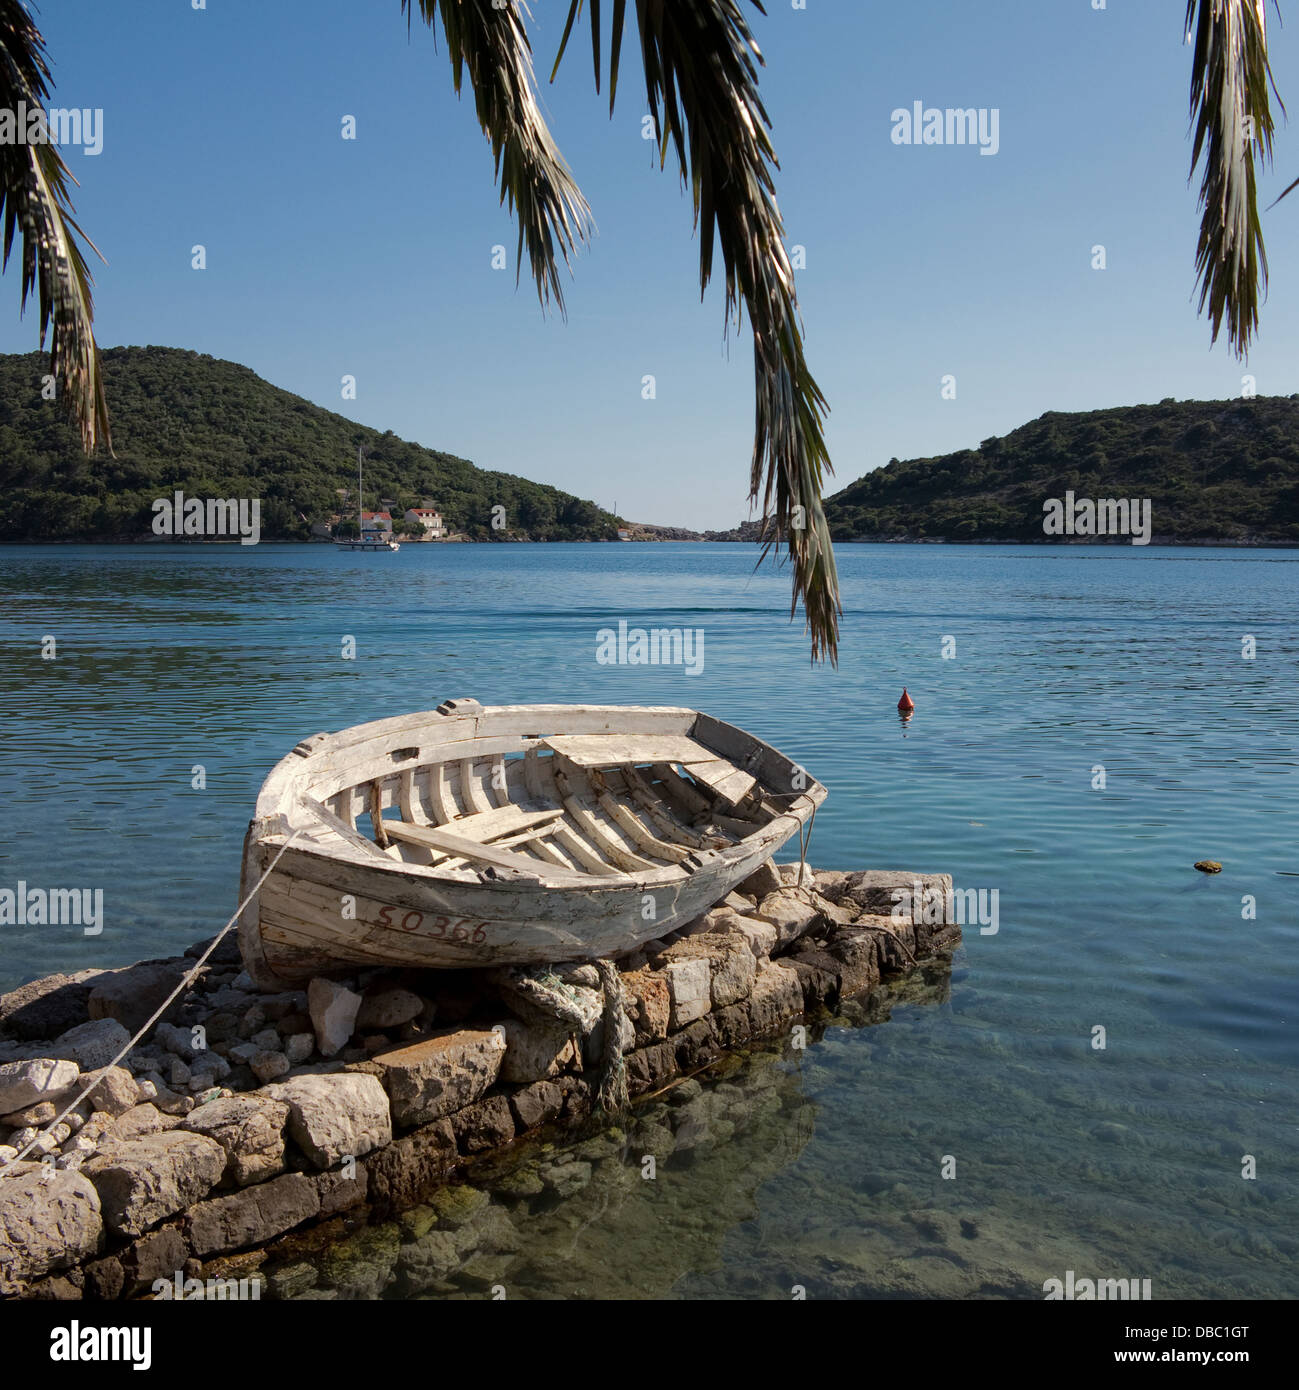 old white rowing boat by a bay on island of Sipan on the Dalmatian coast, near Dubrovnik, Croatia - Stock Image